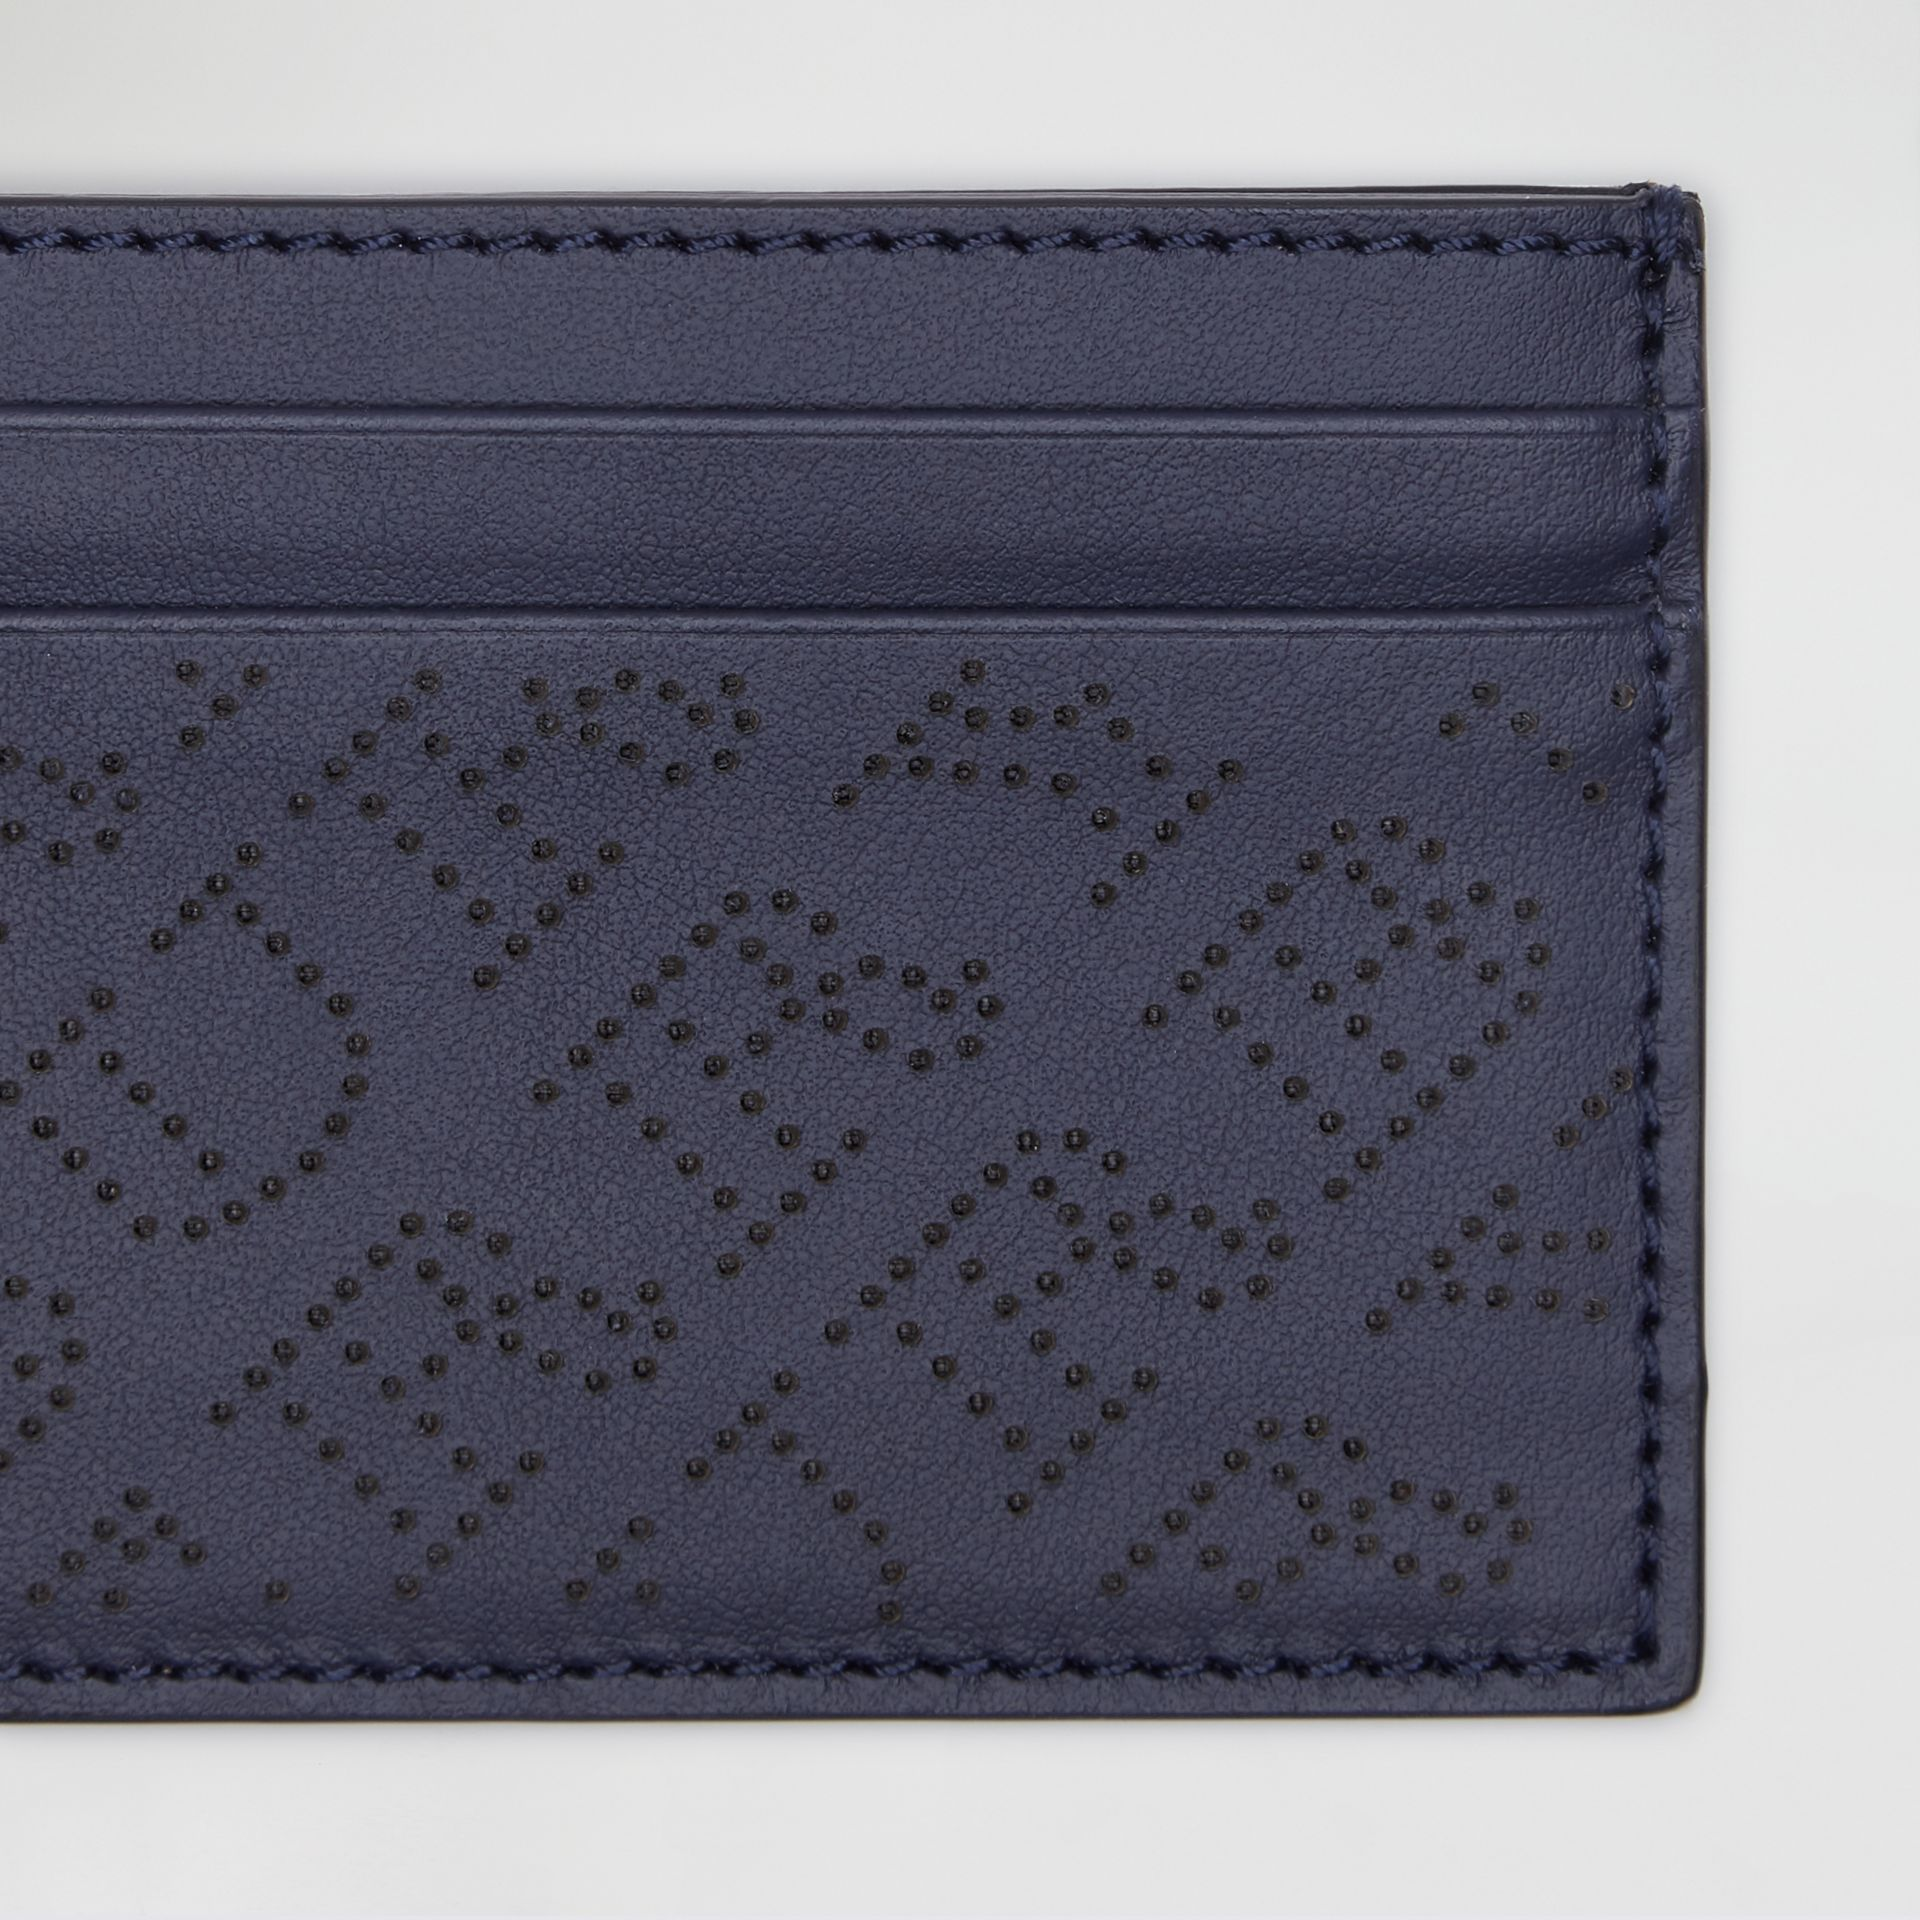 Perforated Logo Leather Card Case in Navy - Women | Burberry United Kingdom - gallery image 1